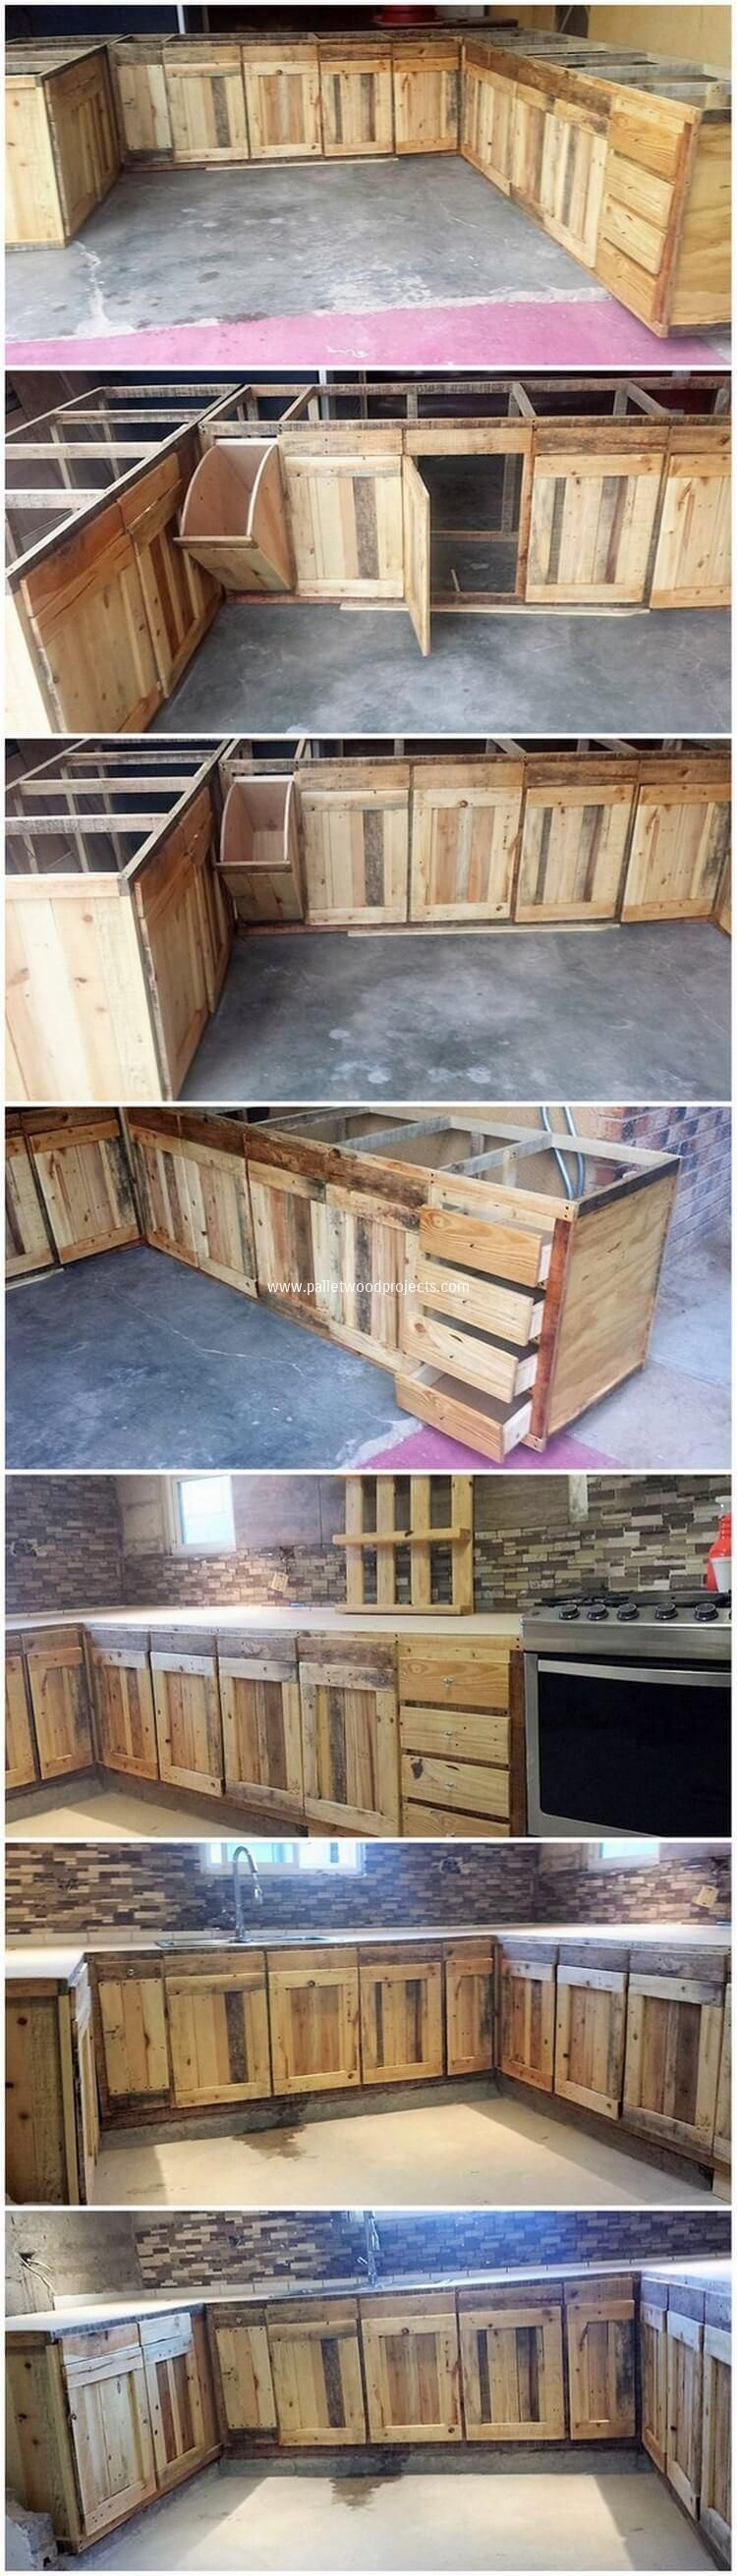 Pallet Kitchen Ideas Pallet Kitchen Cabinets Pallet Kitchen Diy Cabinets